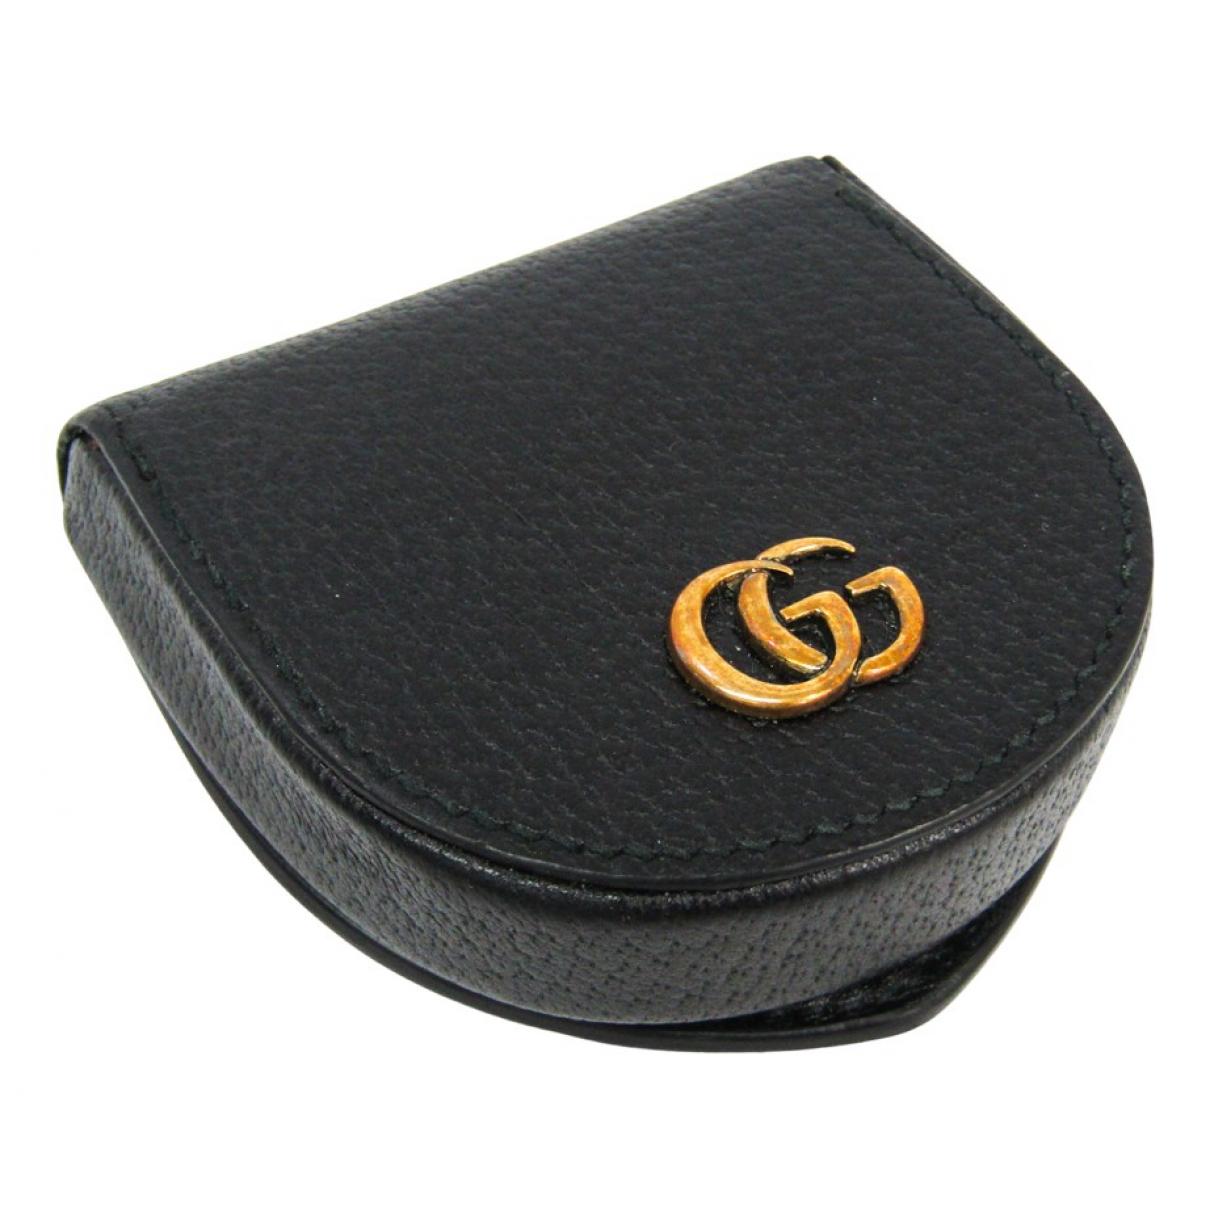 Gucci Marmont Black Leather wallet for Women N